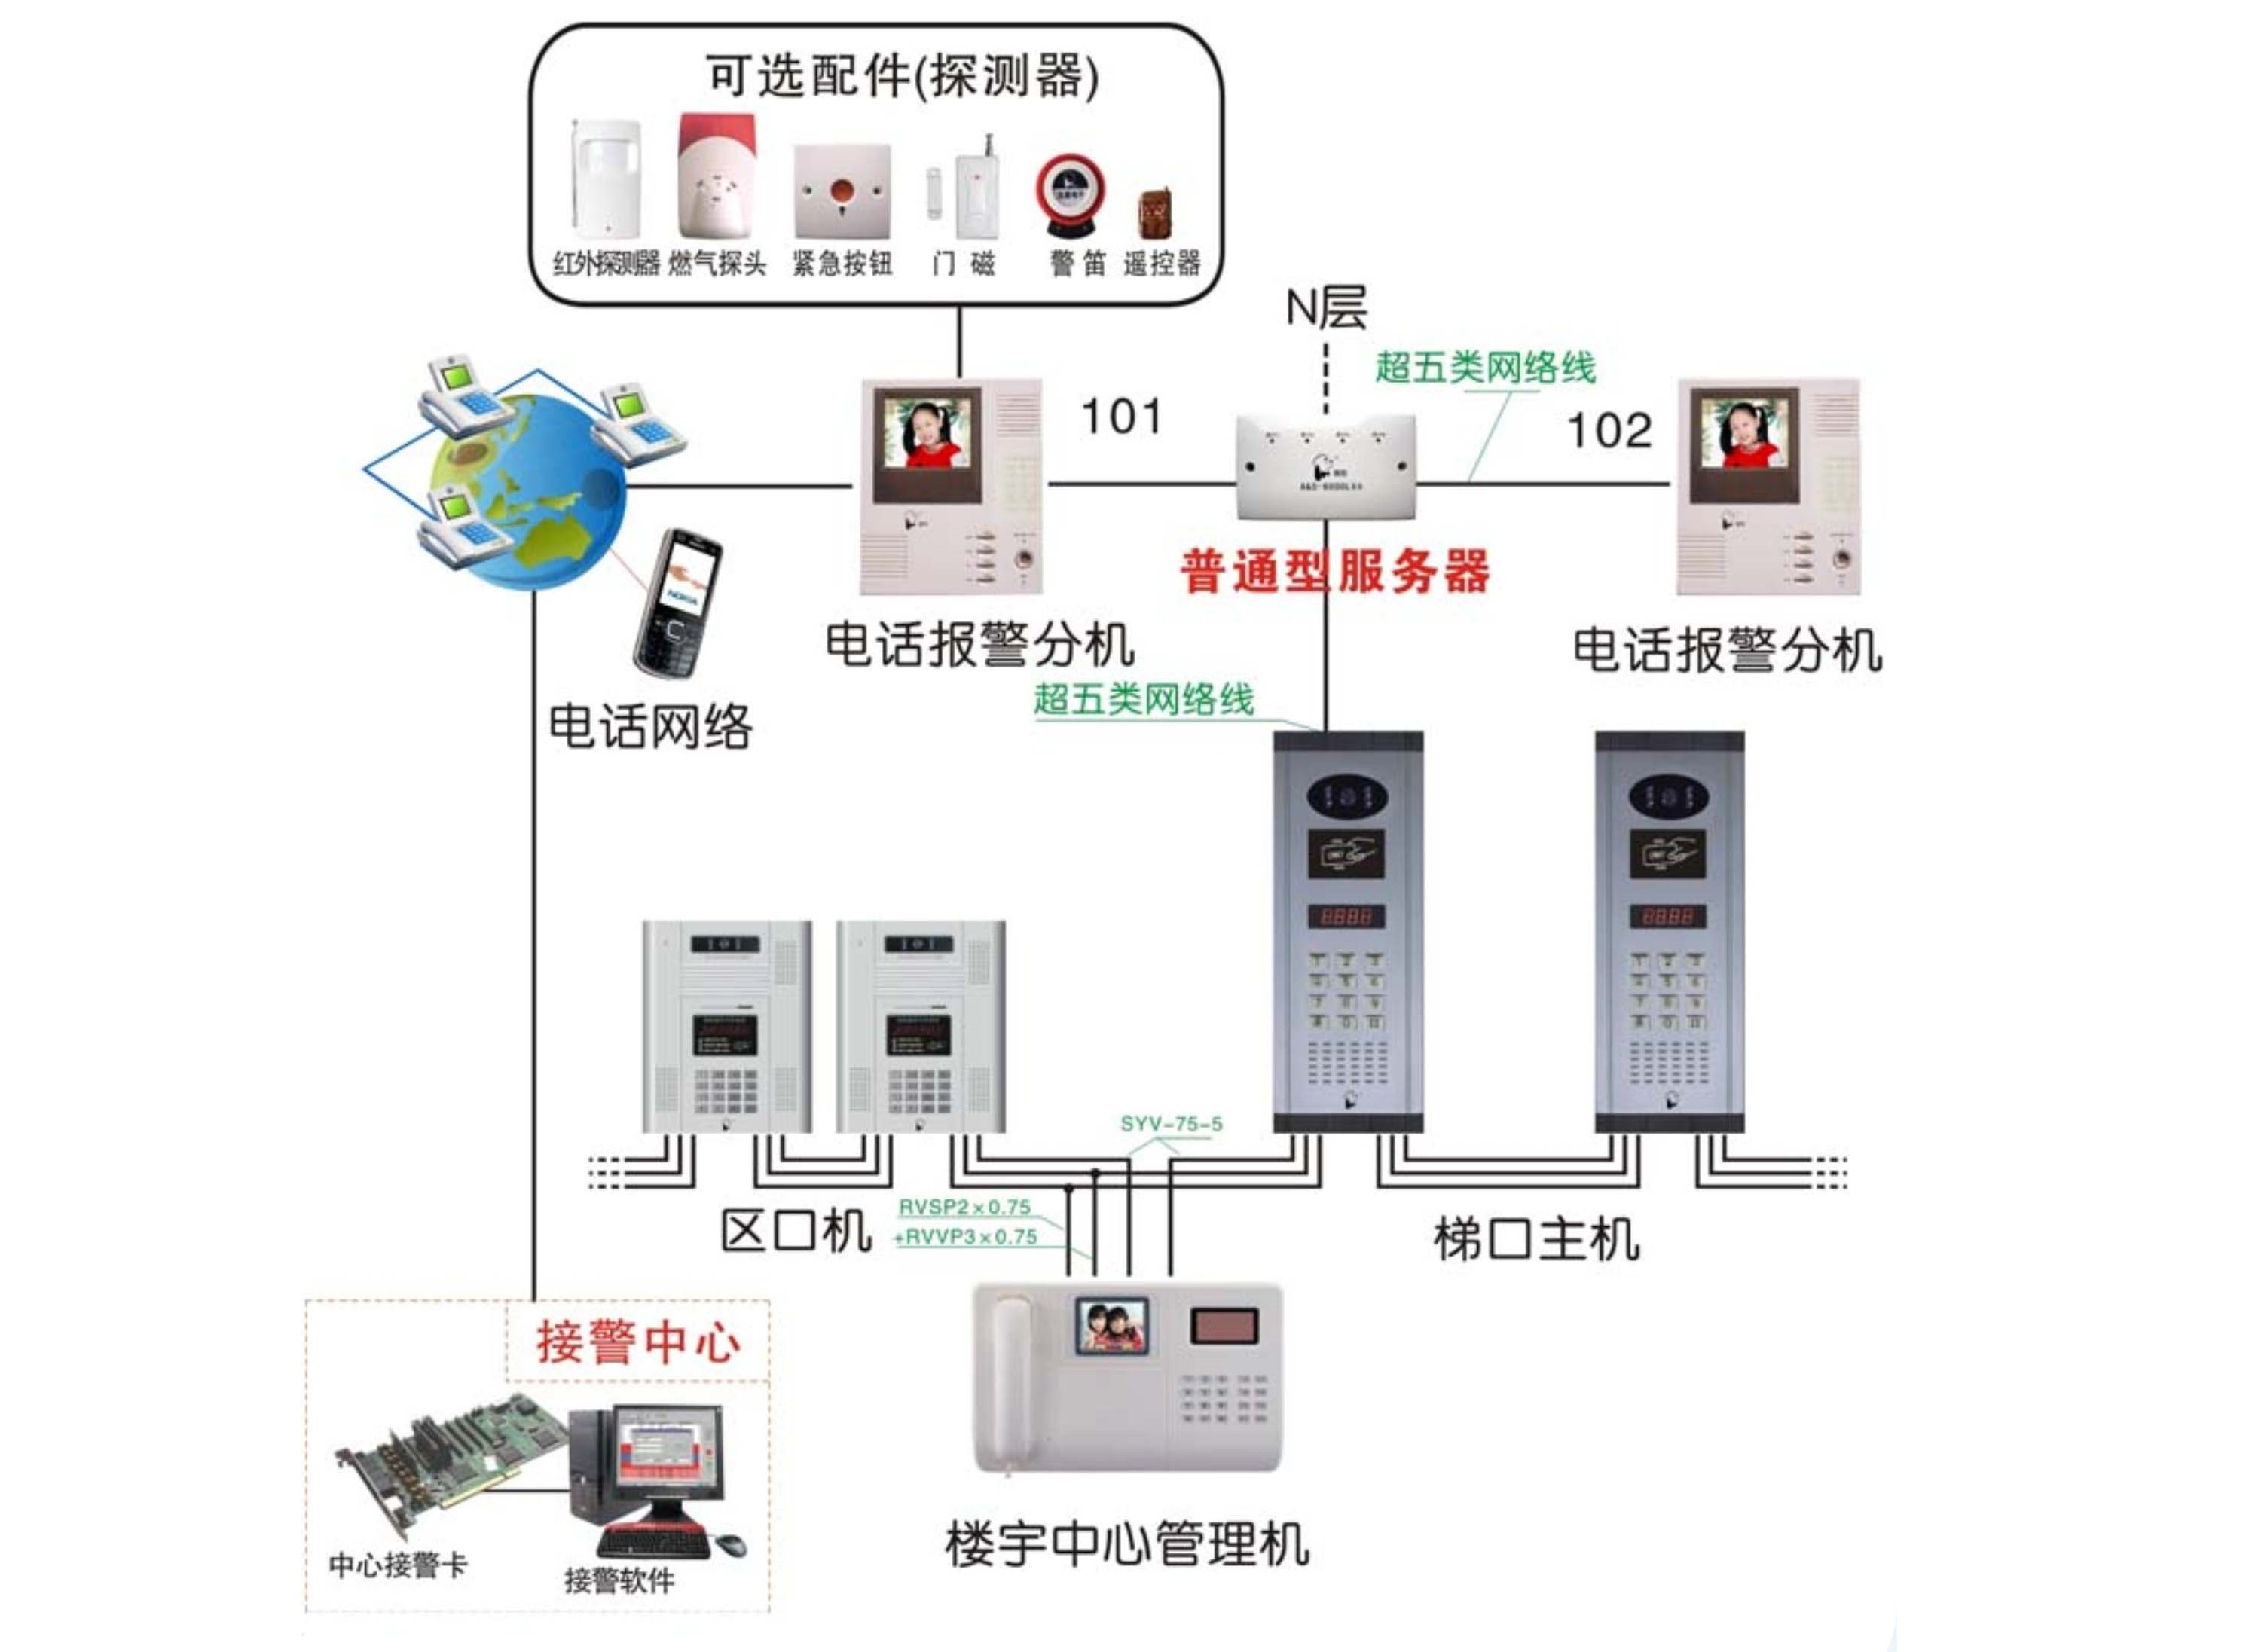 Integration of access control and alarm